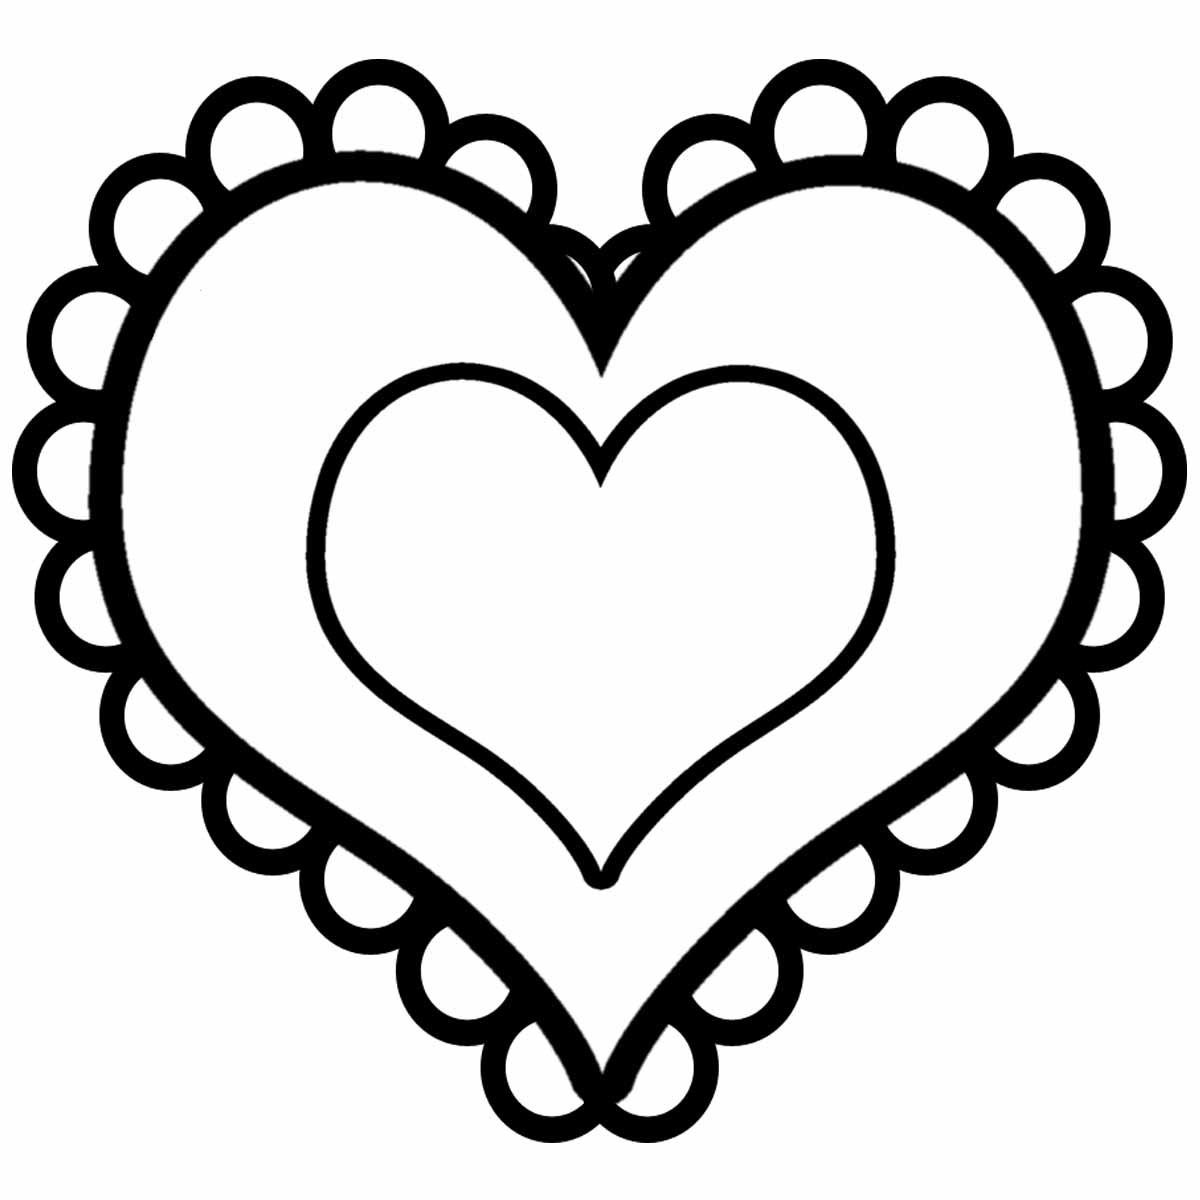 the heart coloring pages - photo #50